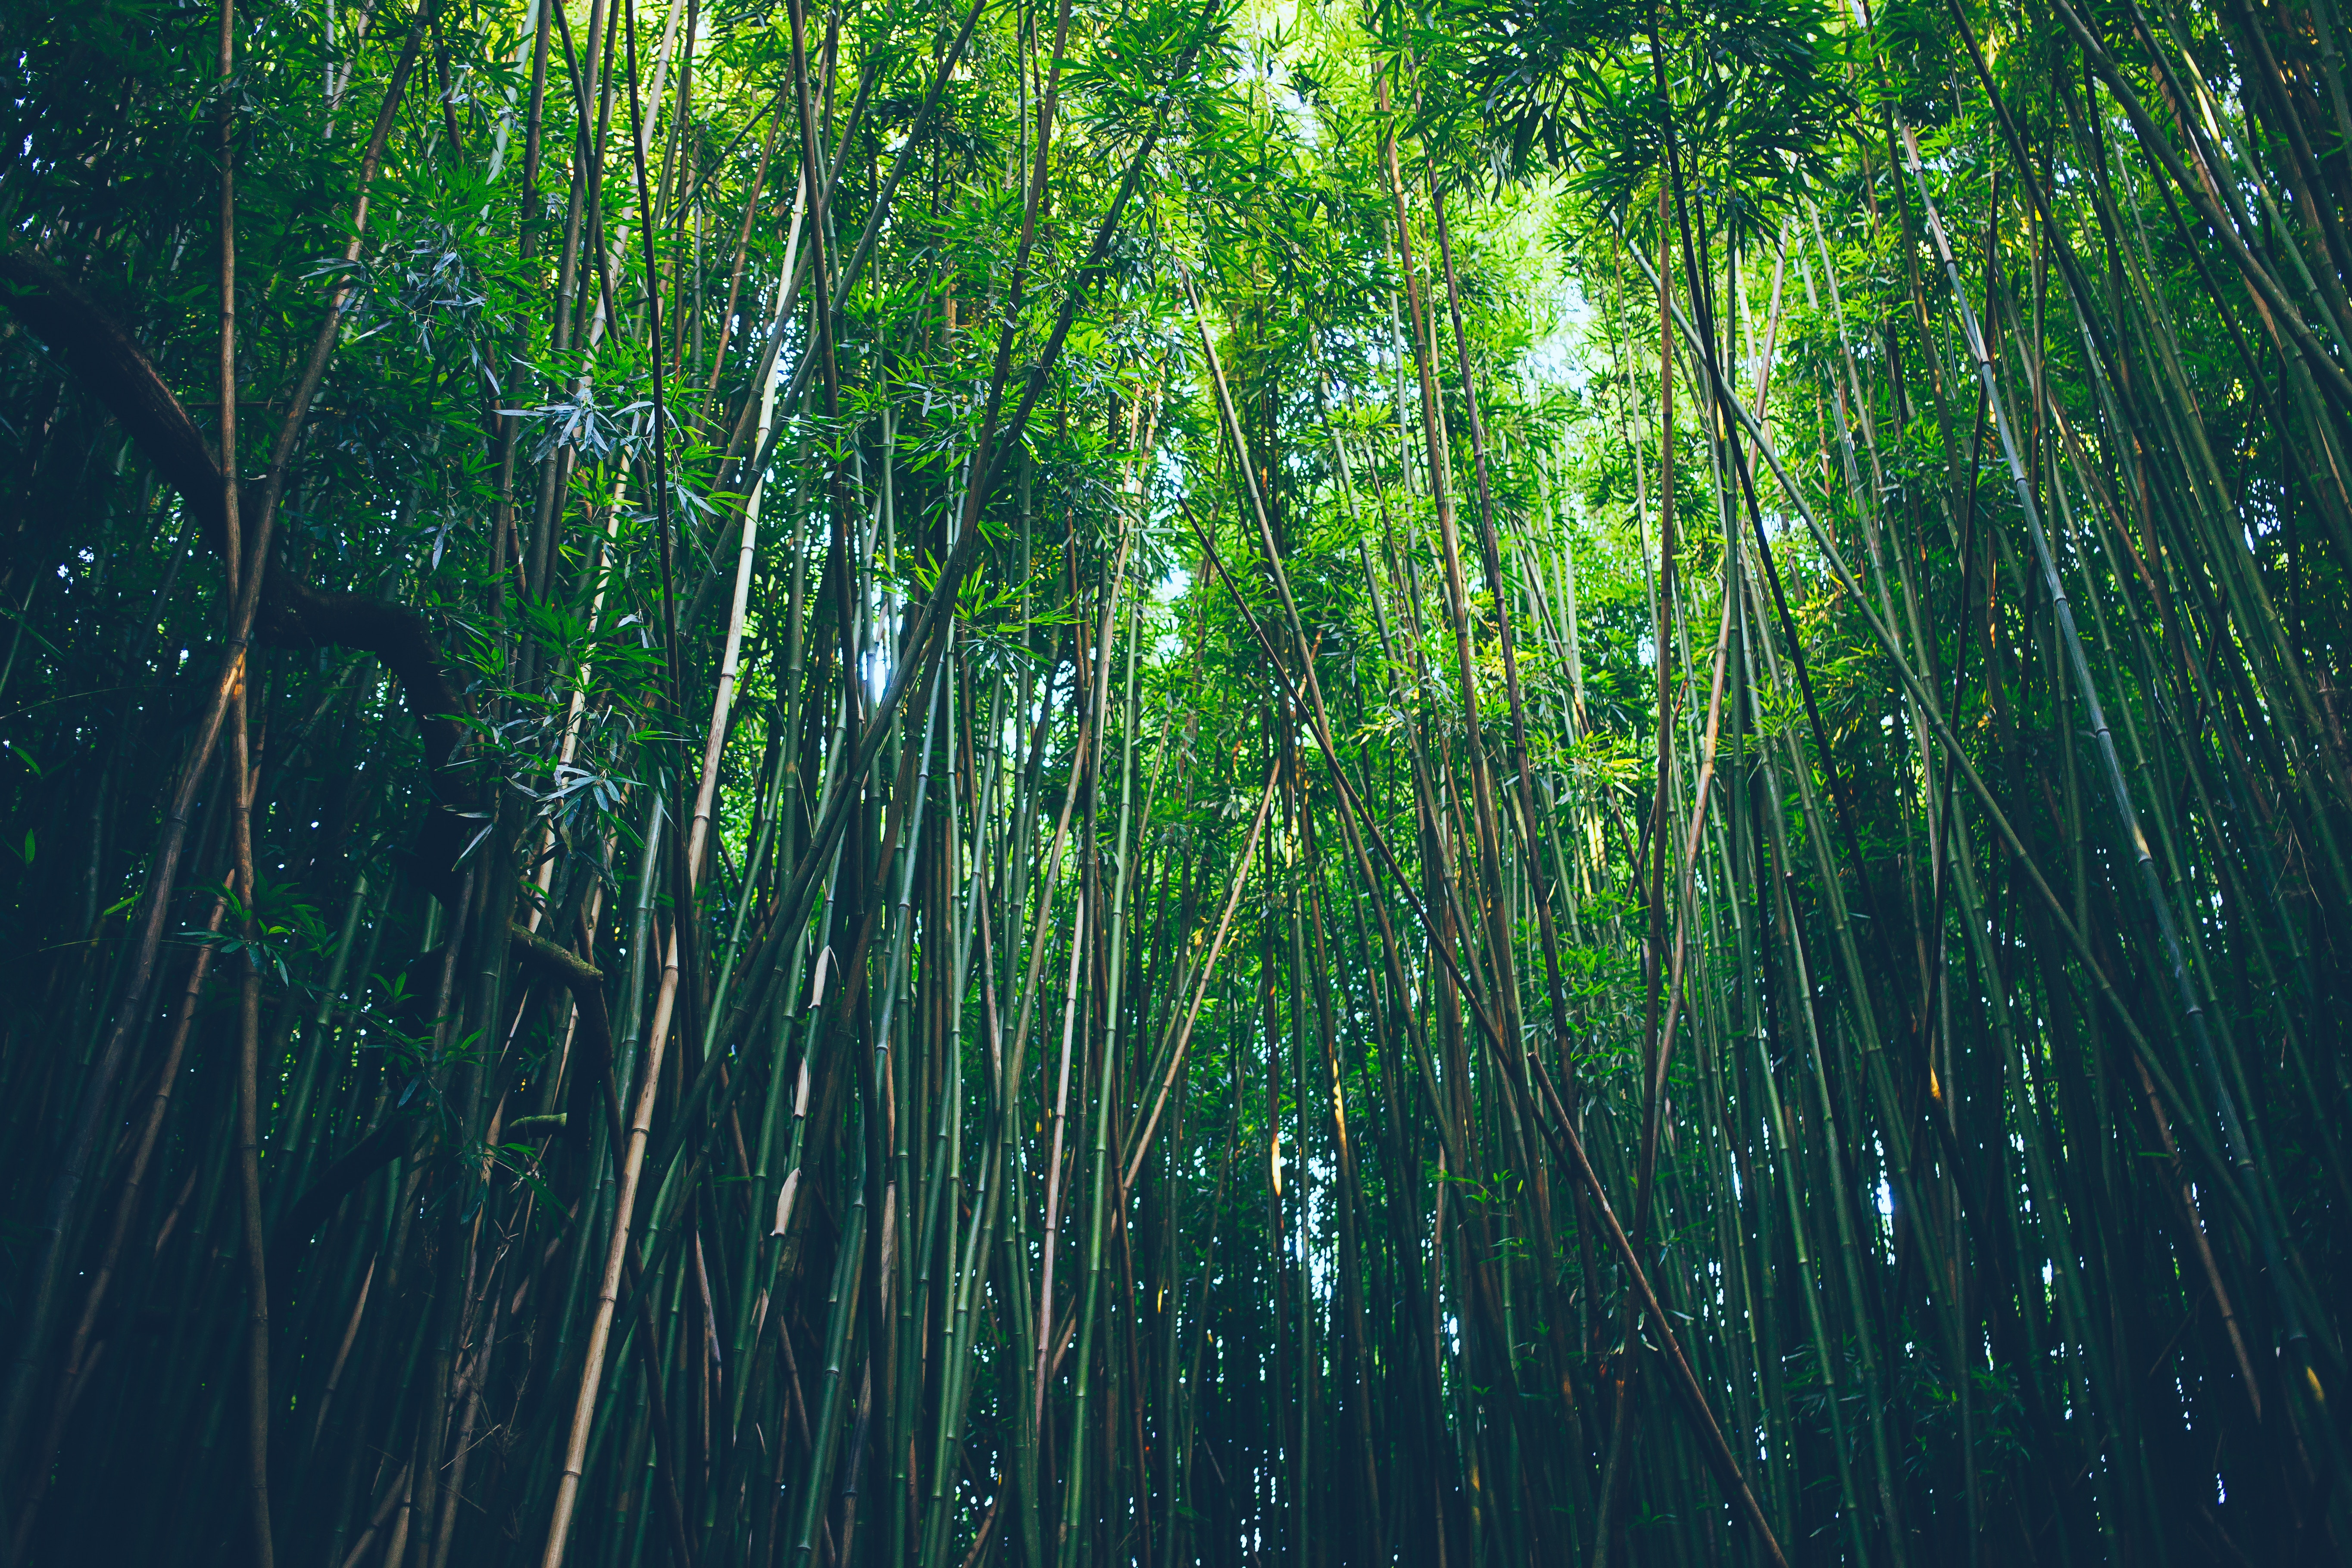 Bamboo Forest Nature 5457x3638